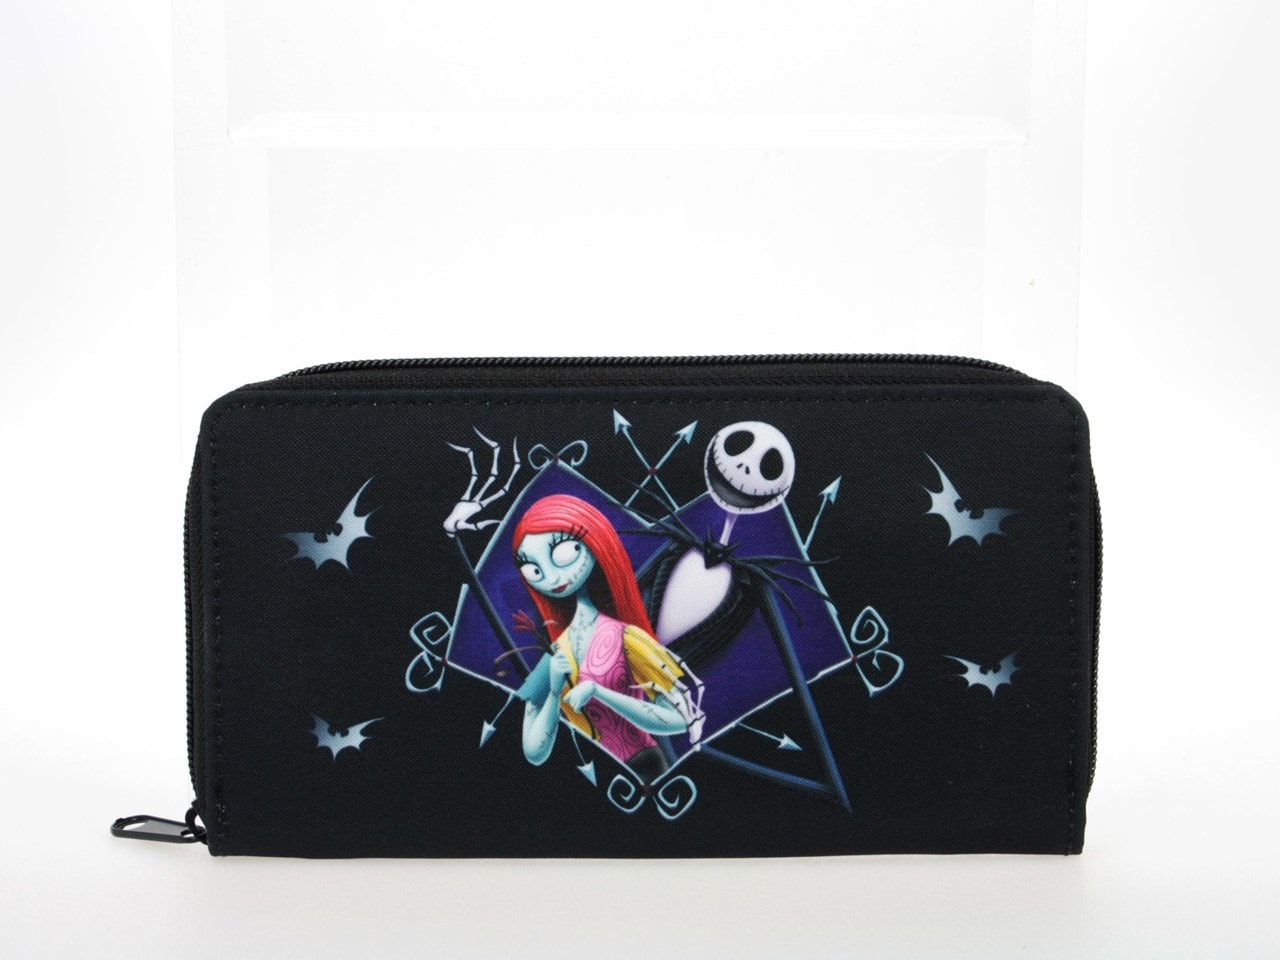 Jack & Sally: The Nightmare Before Christmas Purse - 1